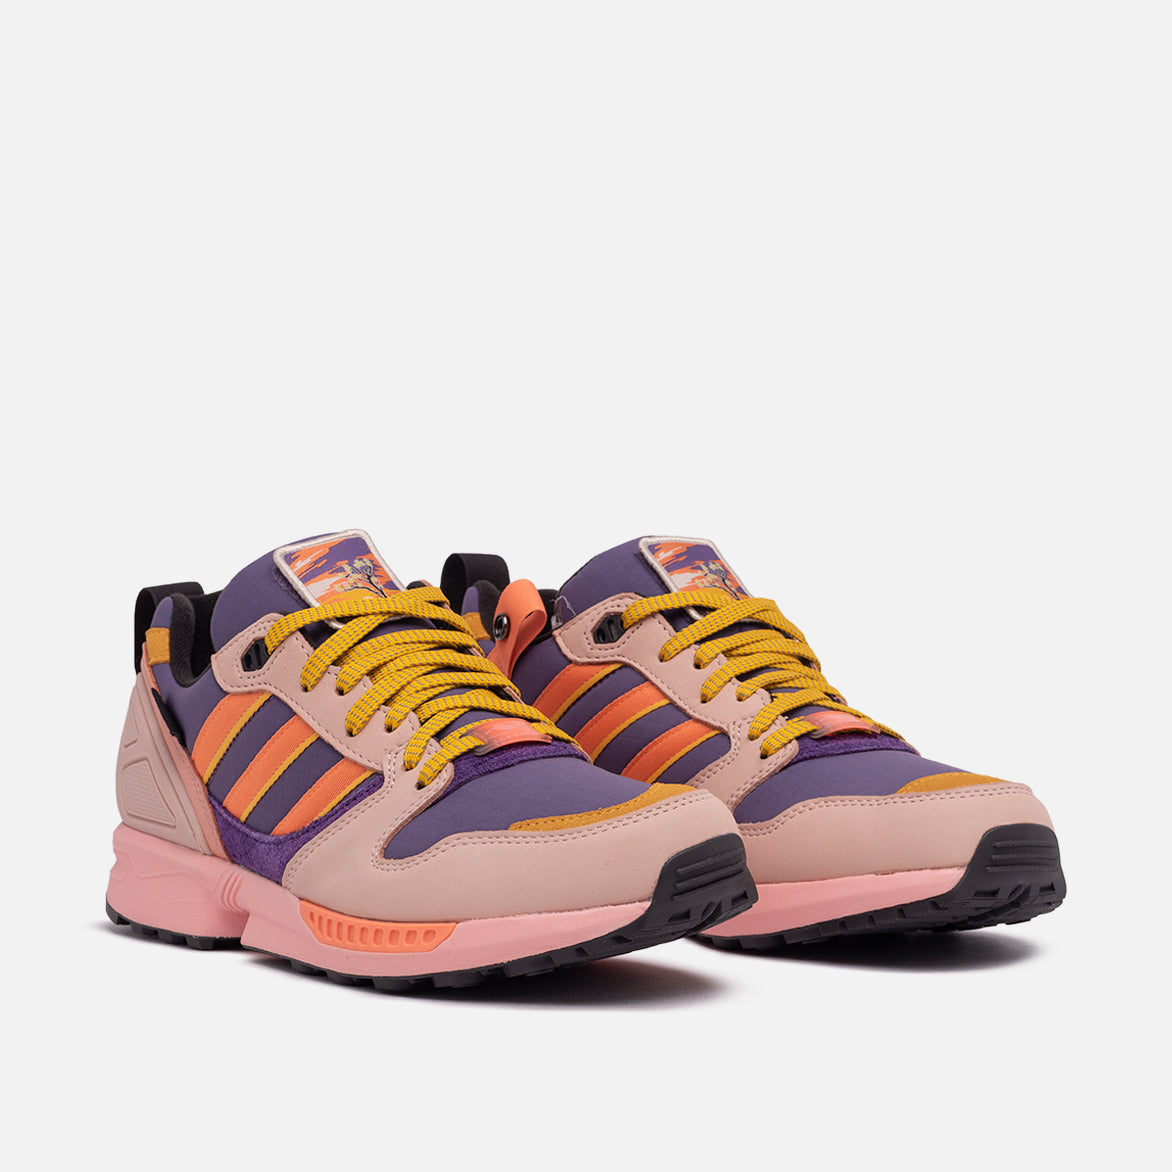 National Park Foundation X Adidas Zx 5000 Joshua Tree Lapstoneandhammer Com